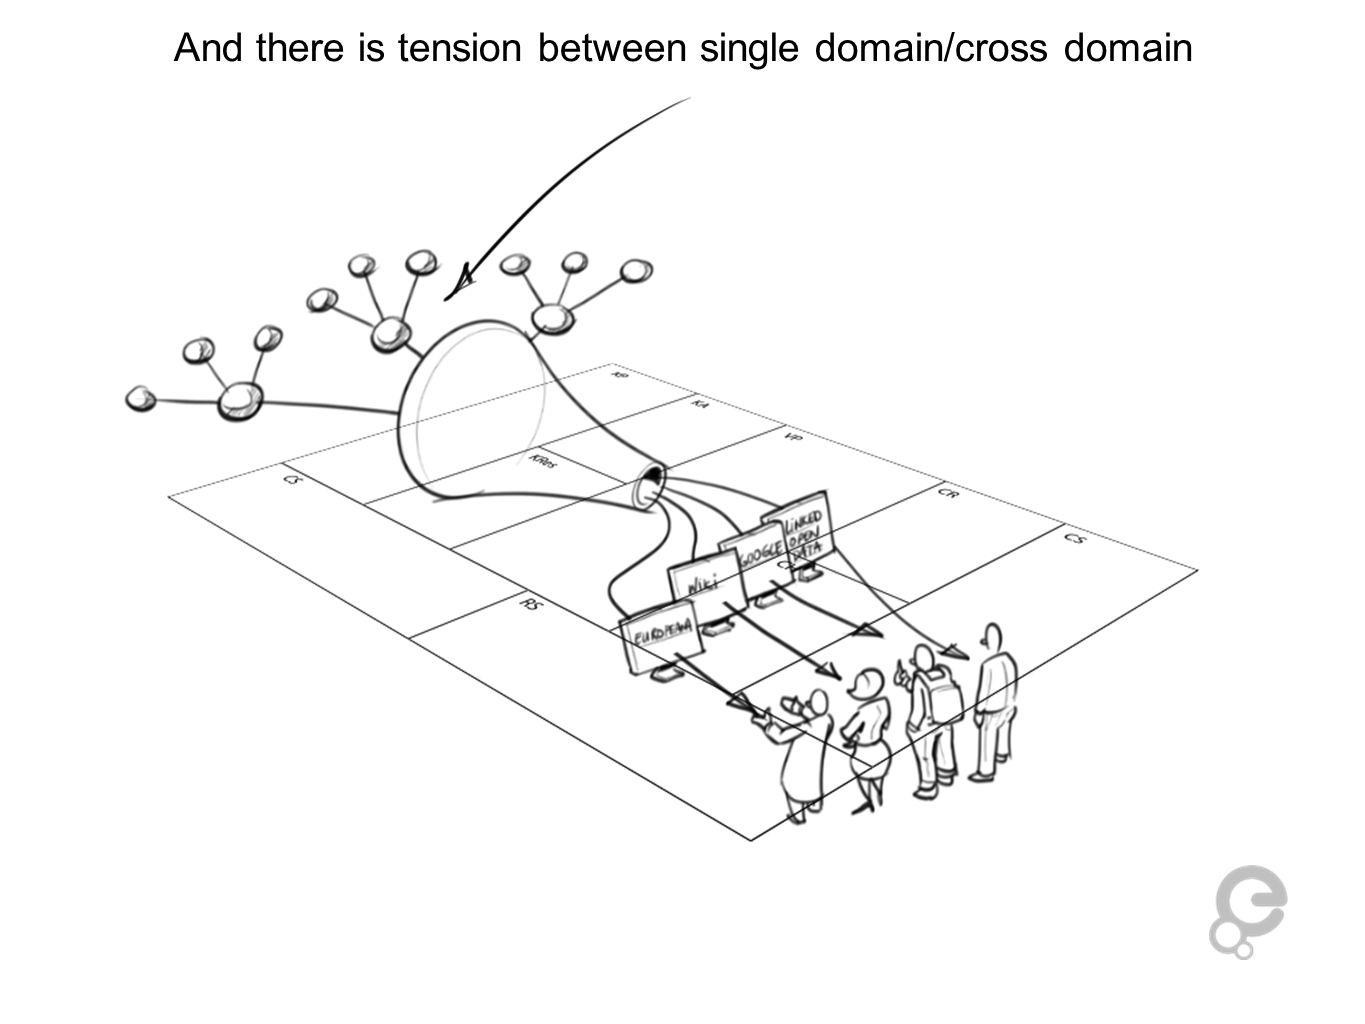 And there is tension between single domain/cross domain